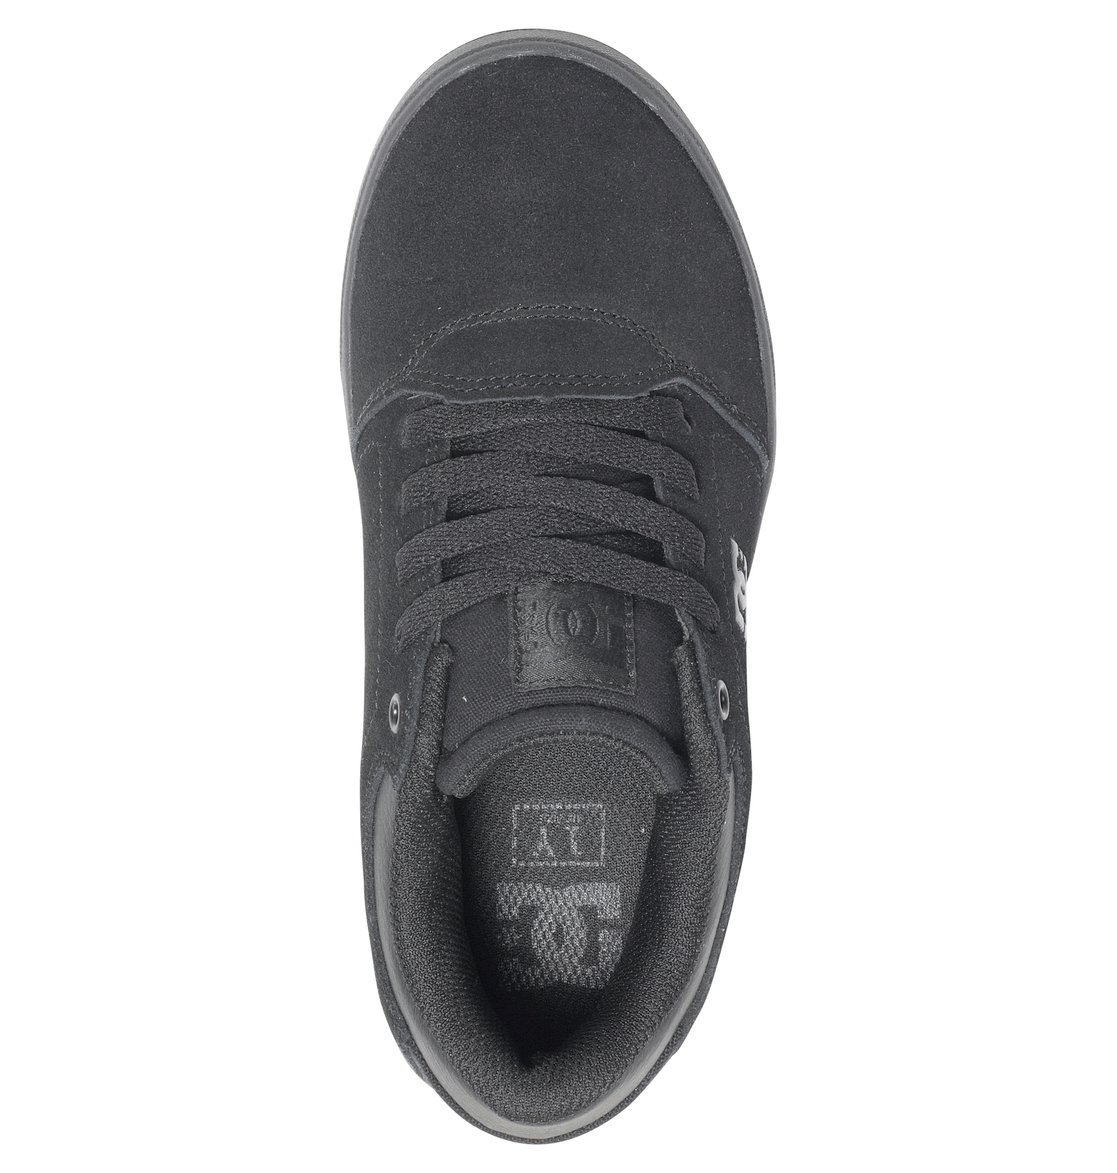 DC-Shoes-Trase-TX-Low-Top-Shoes-Chaussures-basses-Garcon